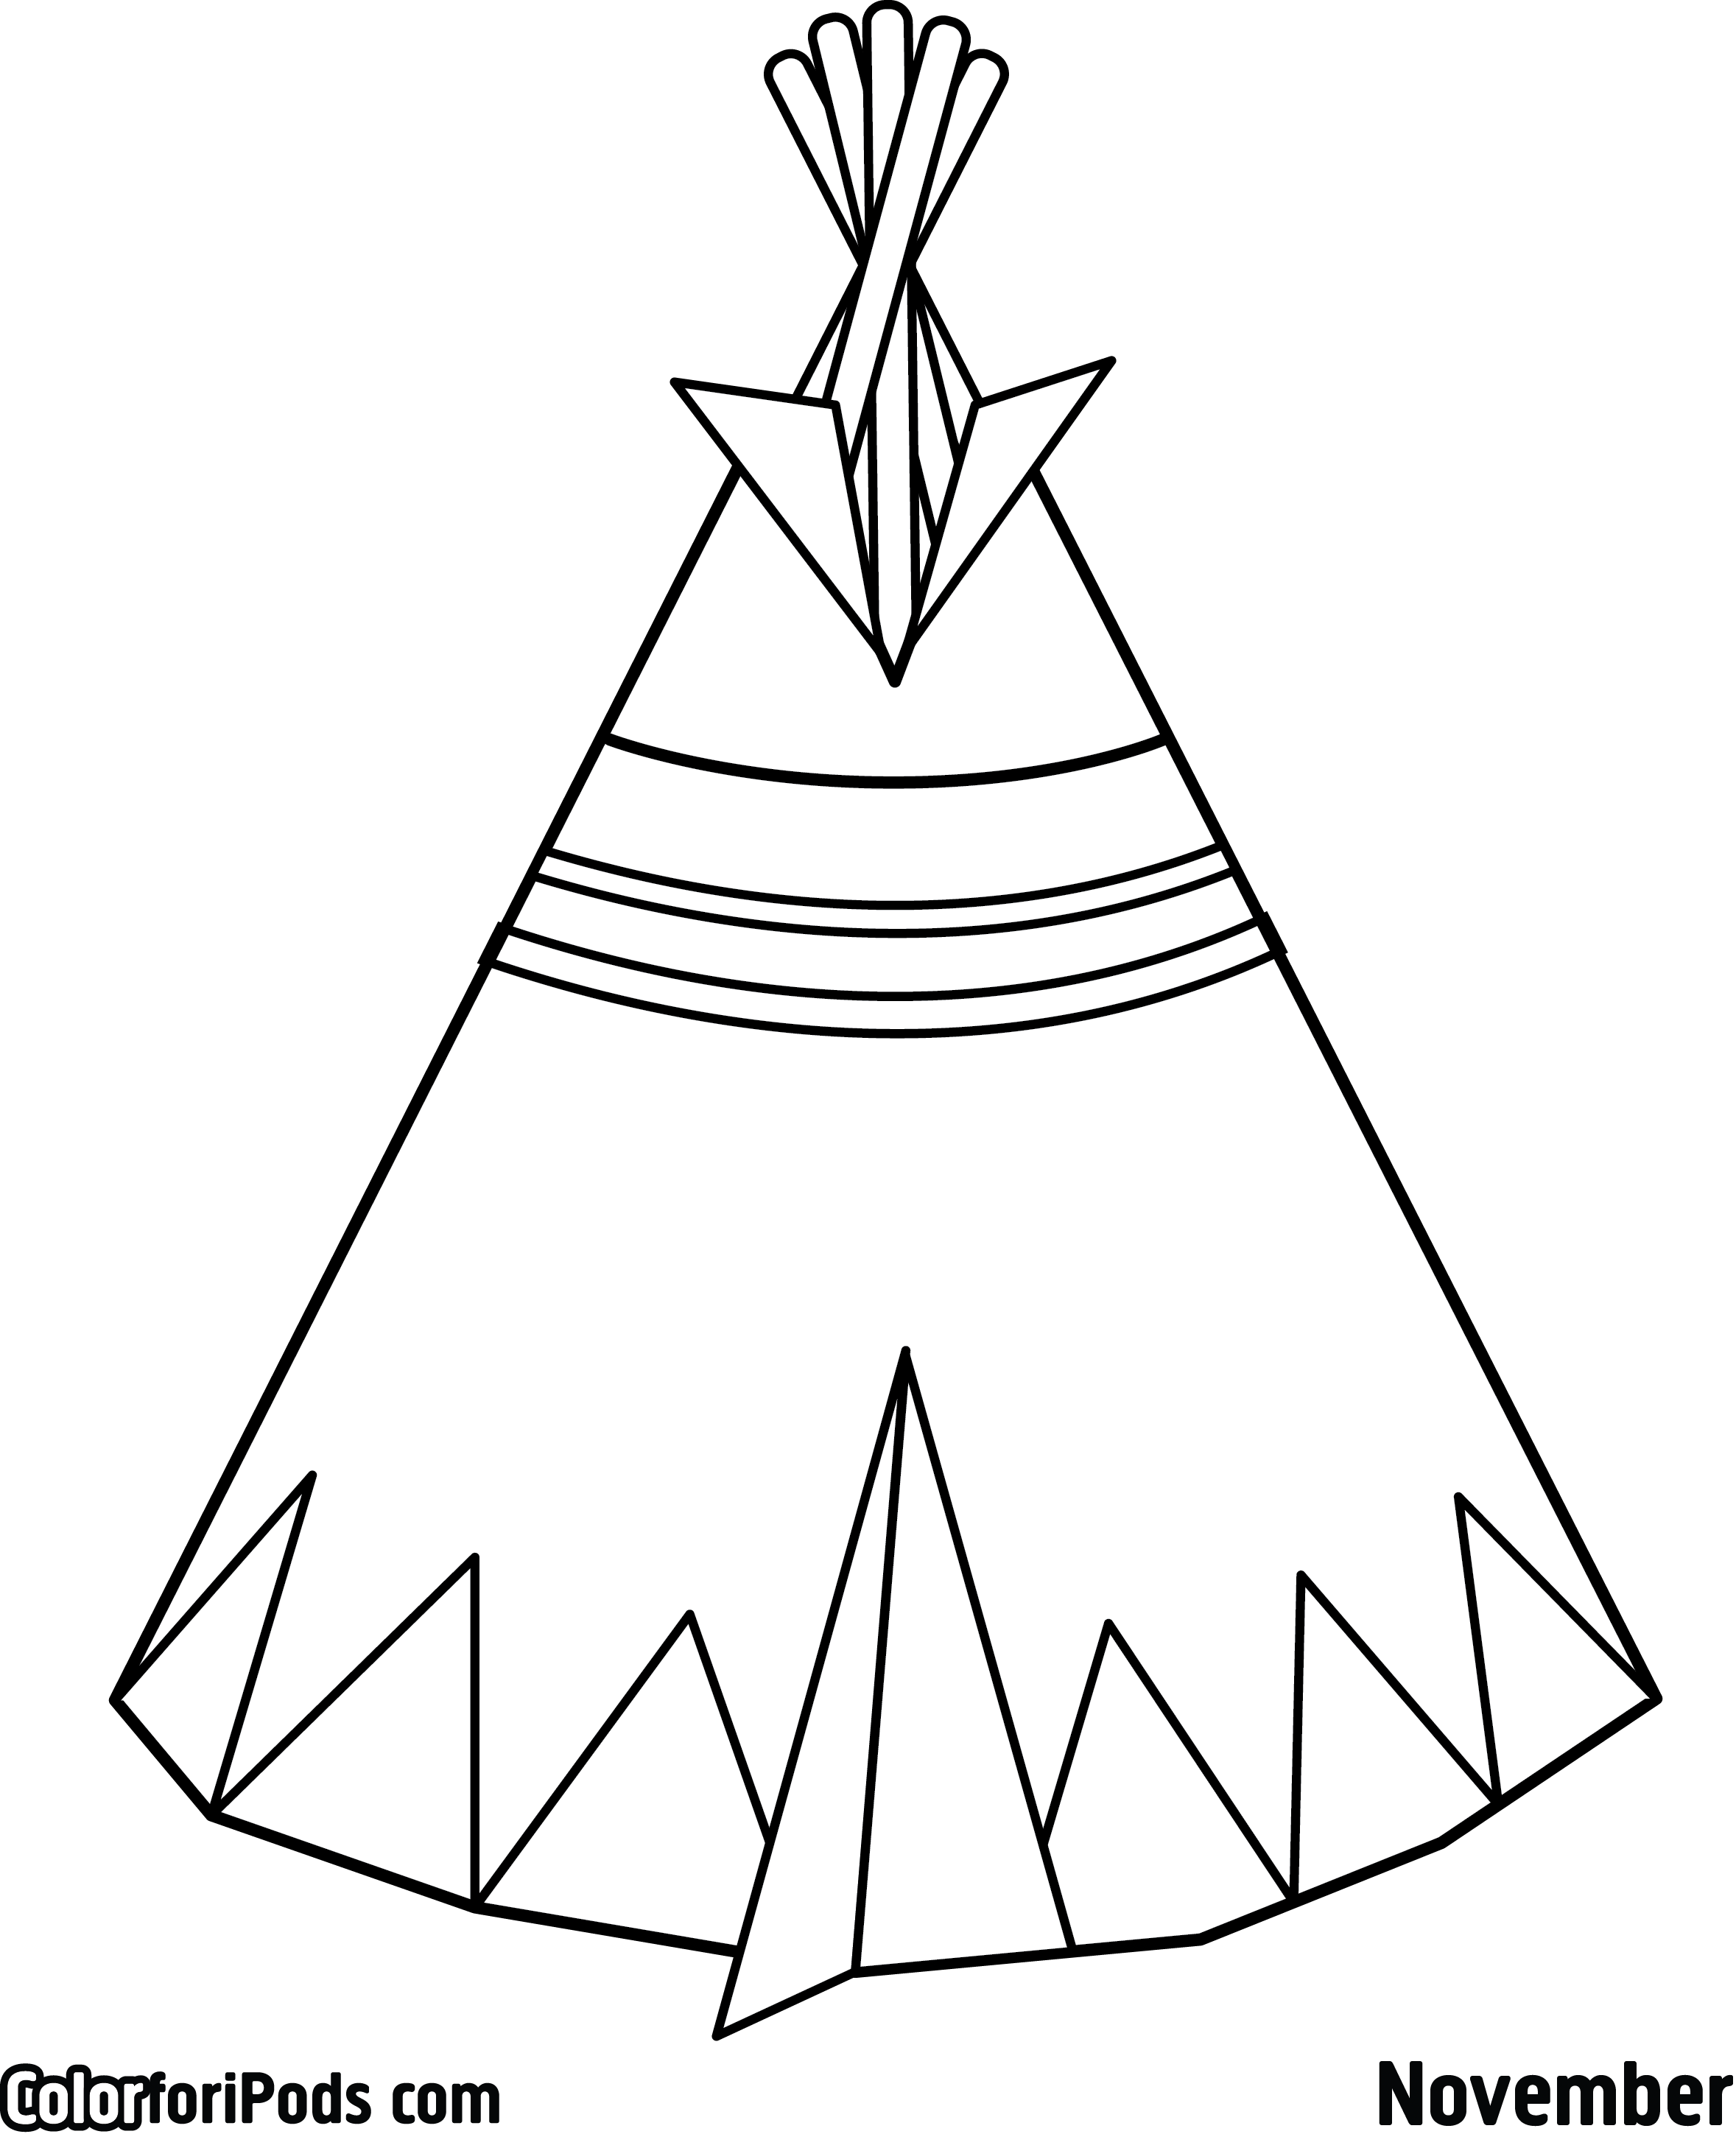 Superb Tee Pee Coloring Pages Printable With Native